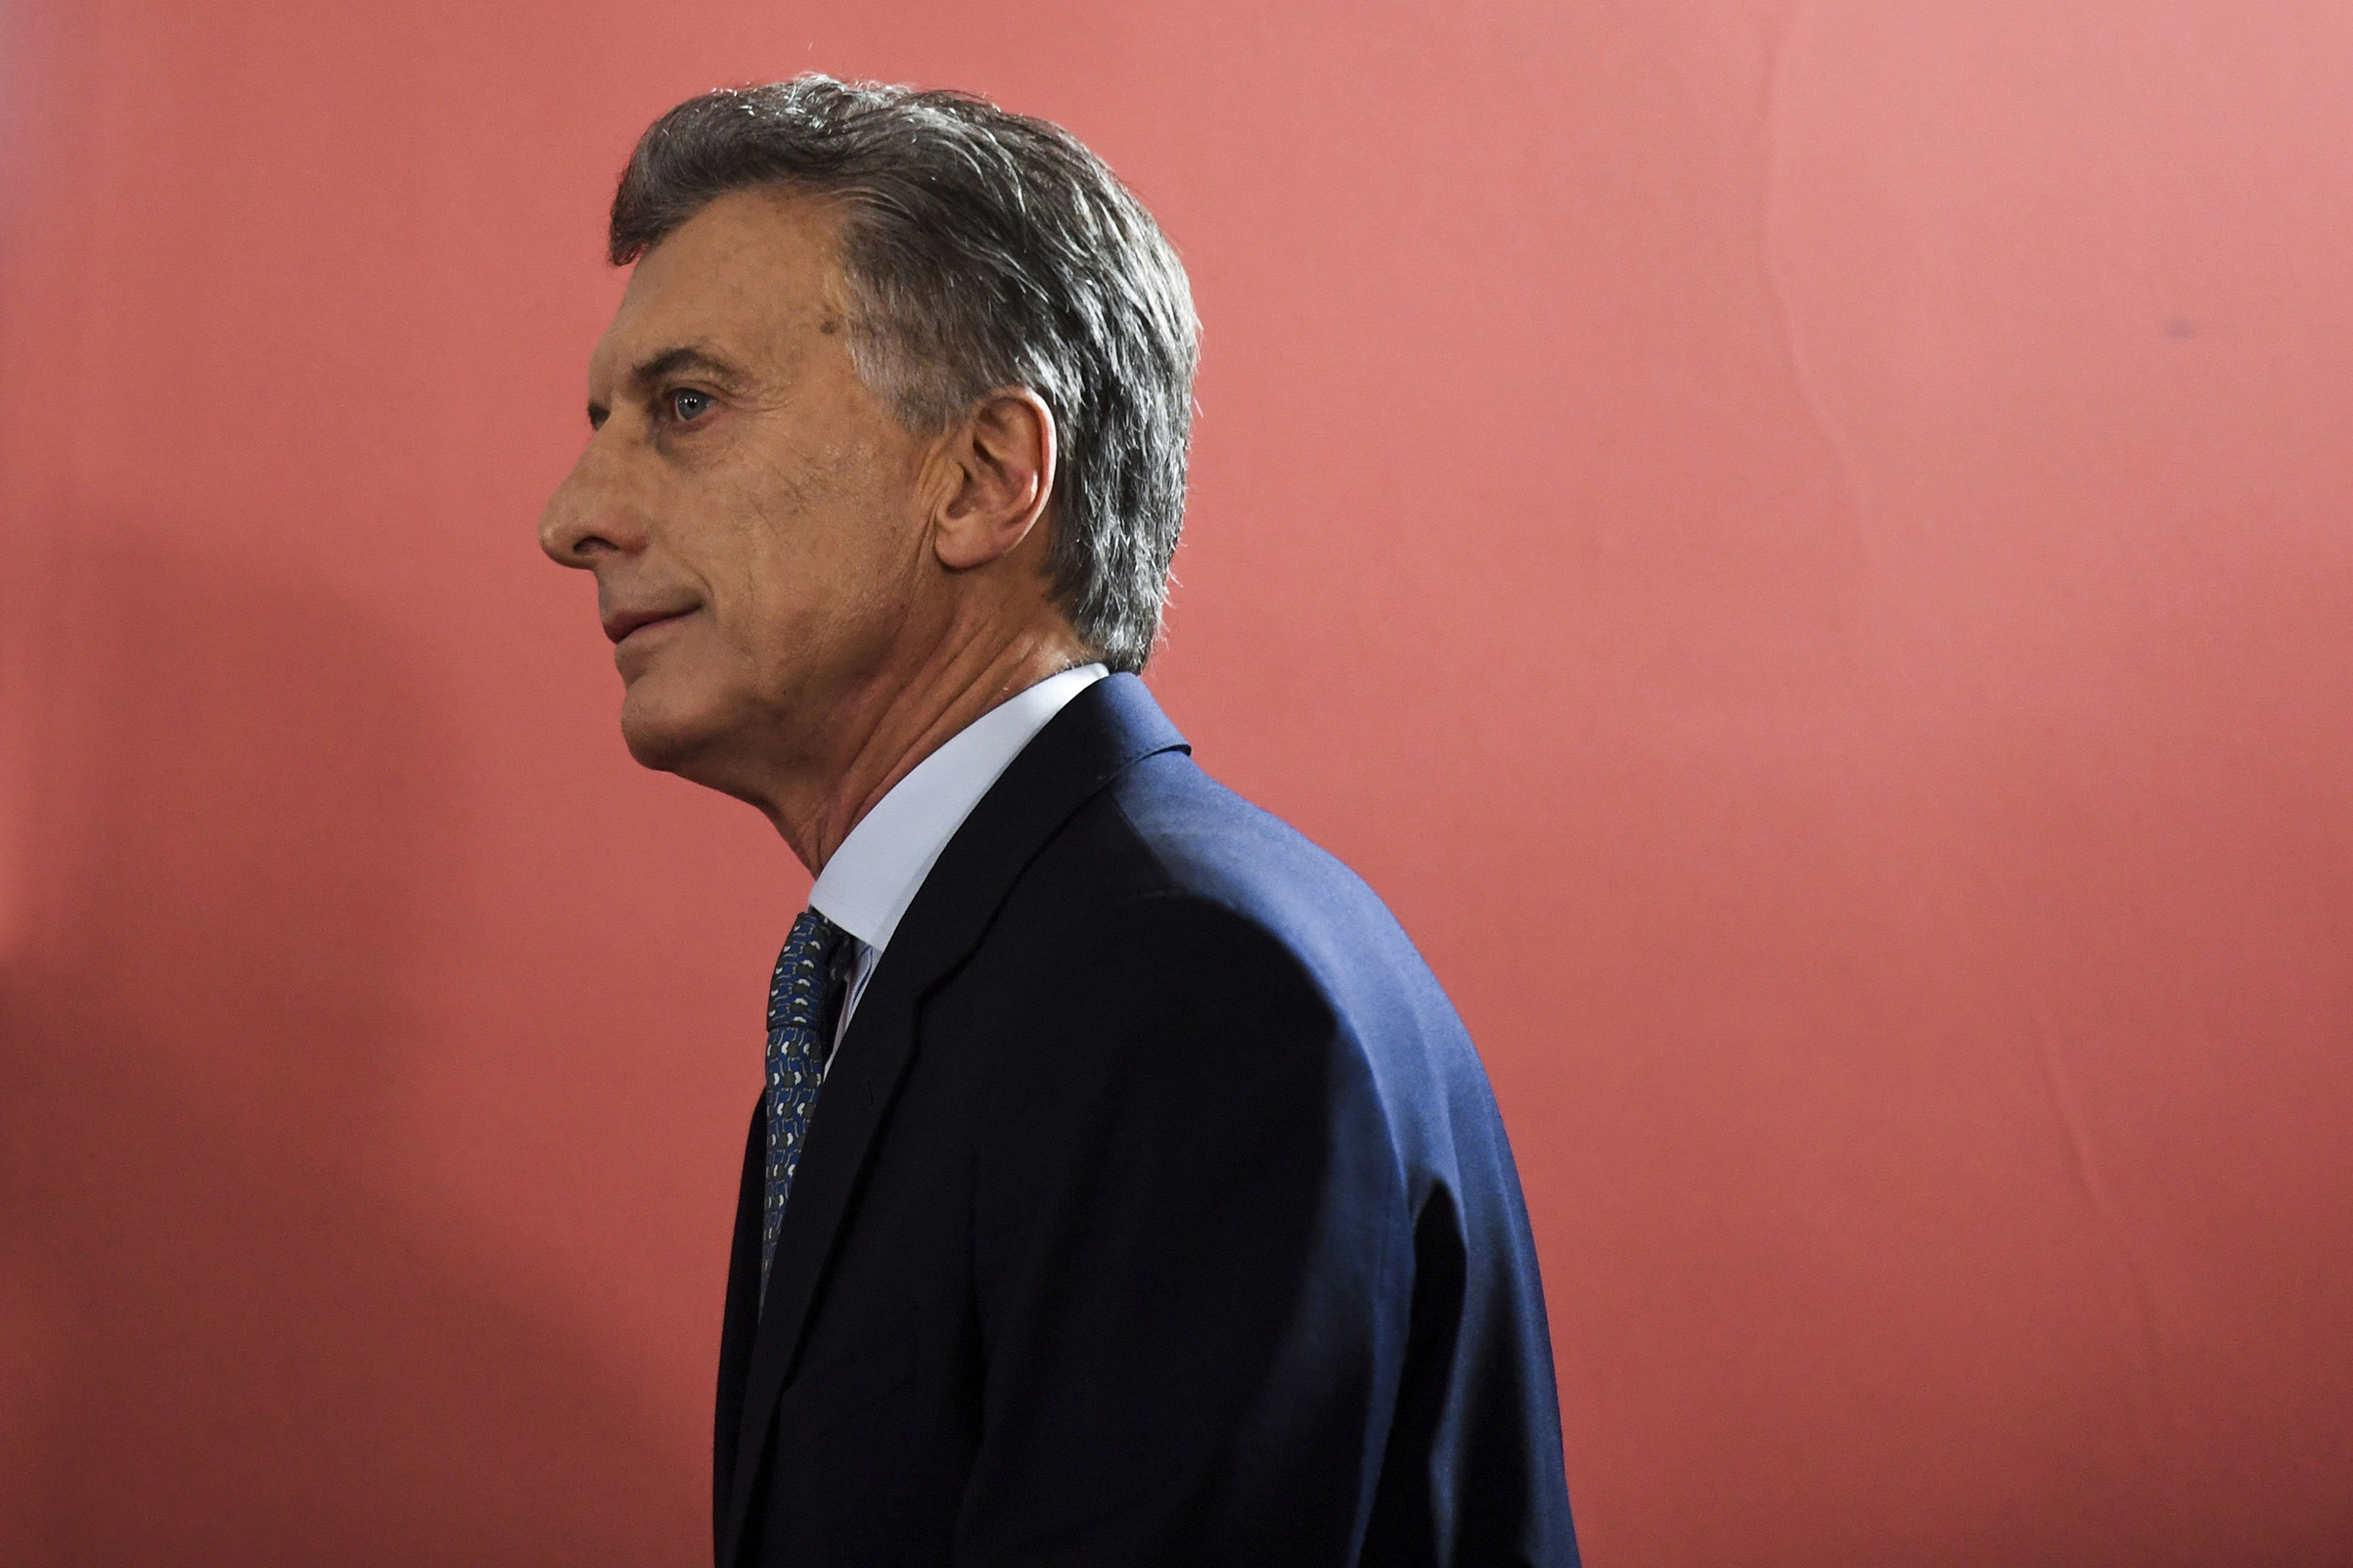 Argentina's President Mauricio Macri arrives to deliver a statement at Casa Rosada government palace in Buenos Aires, on September 27, 2018.